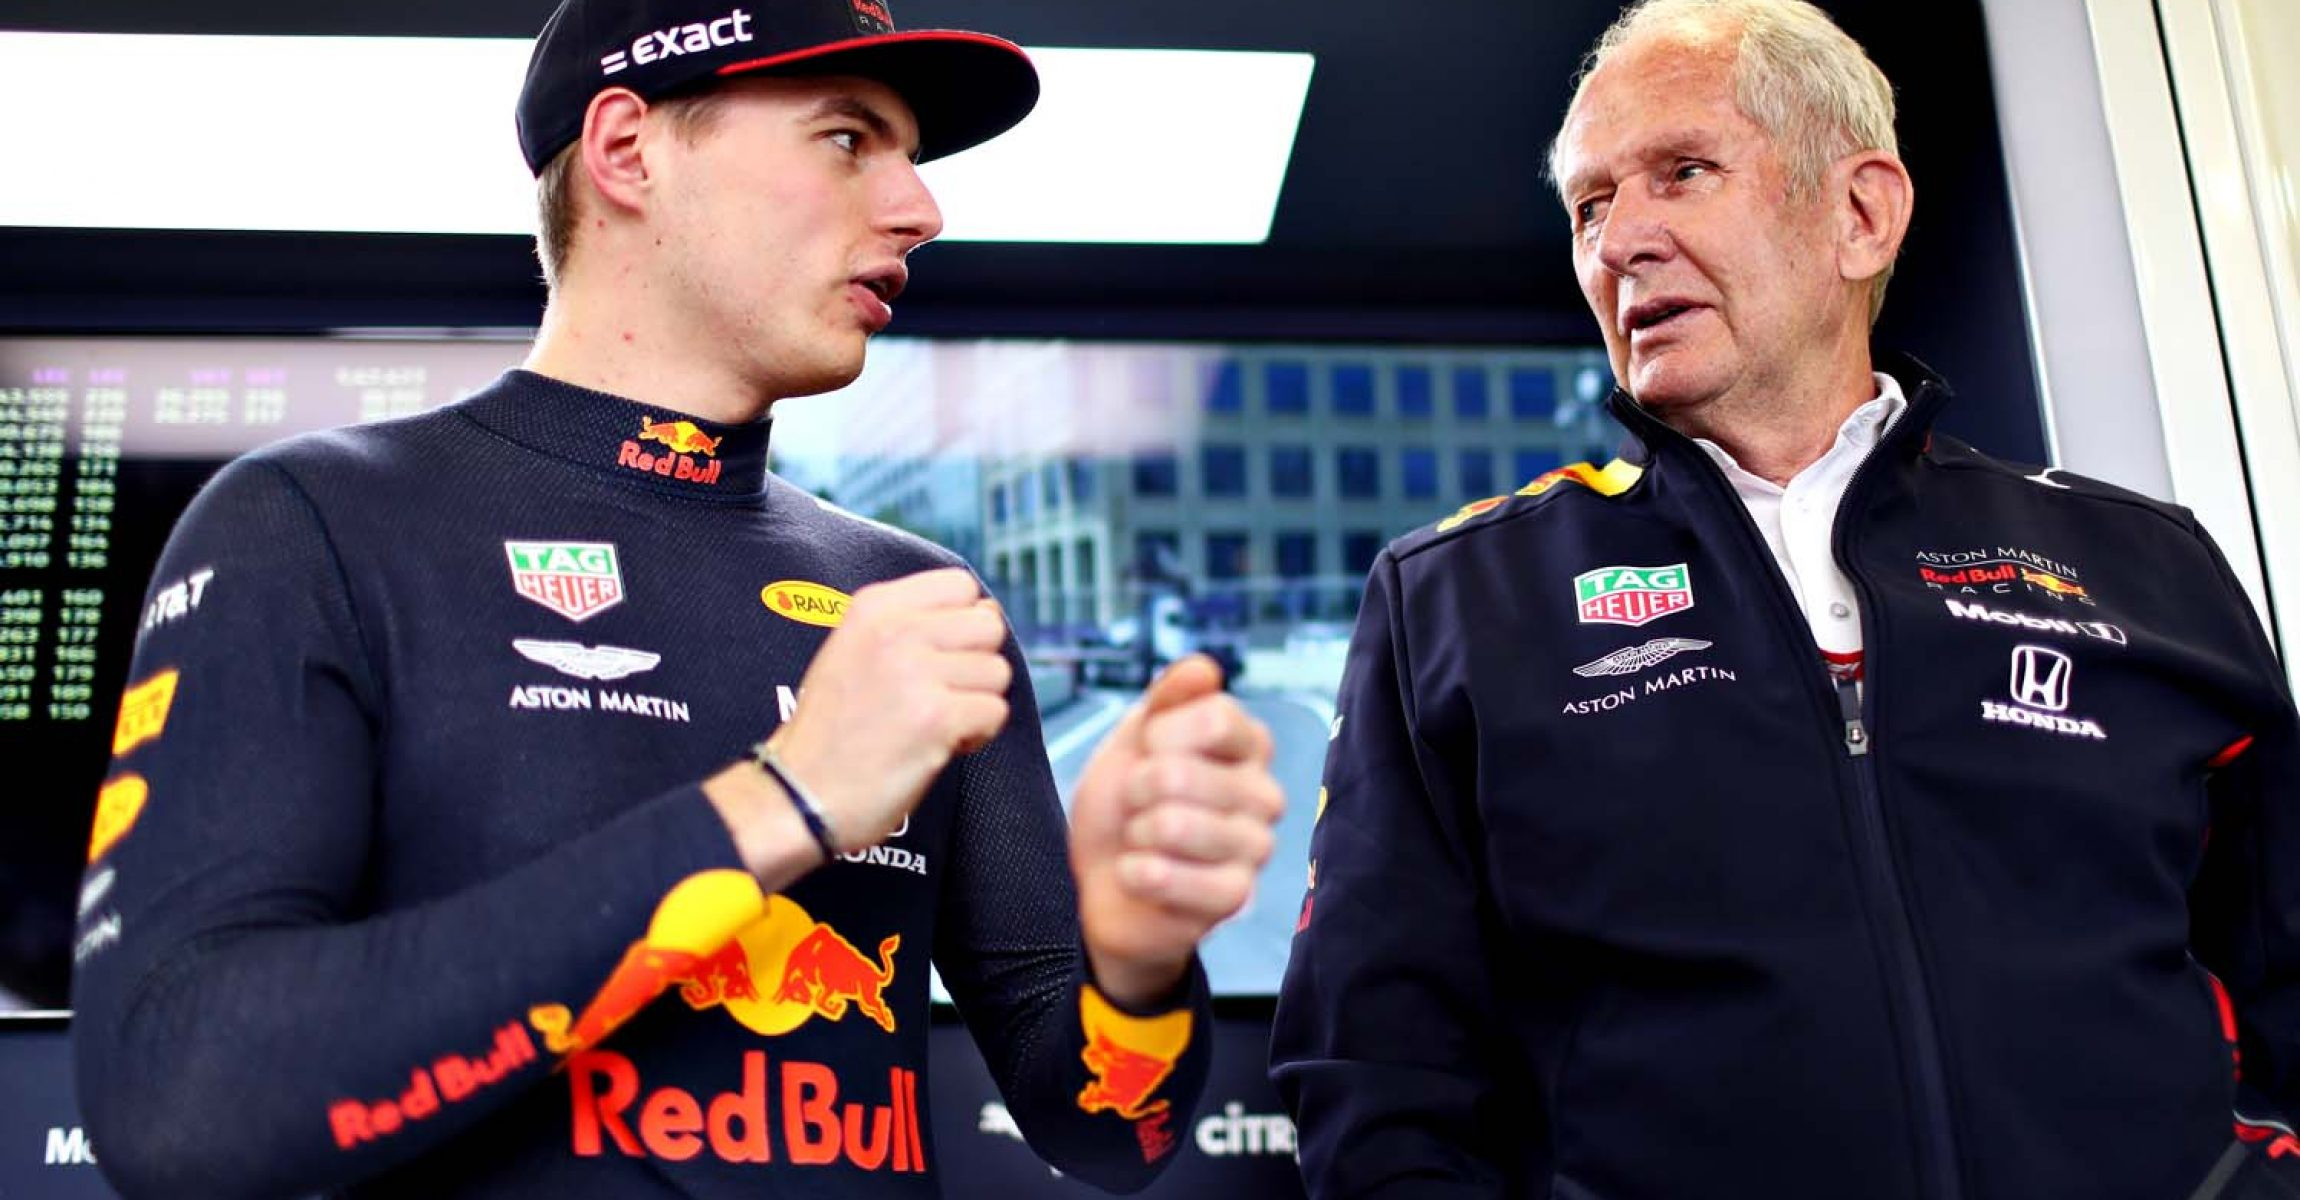 BAKU, AZERBAIJAN - APRIL 26: Max Verstappen of Netherlands and Red Bull Racing talks with Red Bull Racing Team Consultant Dr Helmut Marko in the garage during practice for the F1 Grand Prix of Azerbaijan at Baku City Circuit on April 26, 2019 in Baku, Azerbaijan. (Photo by Dan Istitene/Getty Images) // Getty Images / Red Bull Content Pool // AP-1Z5ARFWP91W11 // Usage for editorial use only // Please go to www.redbullcontentpool.com for further information. //